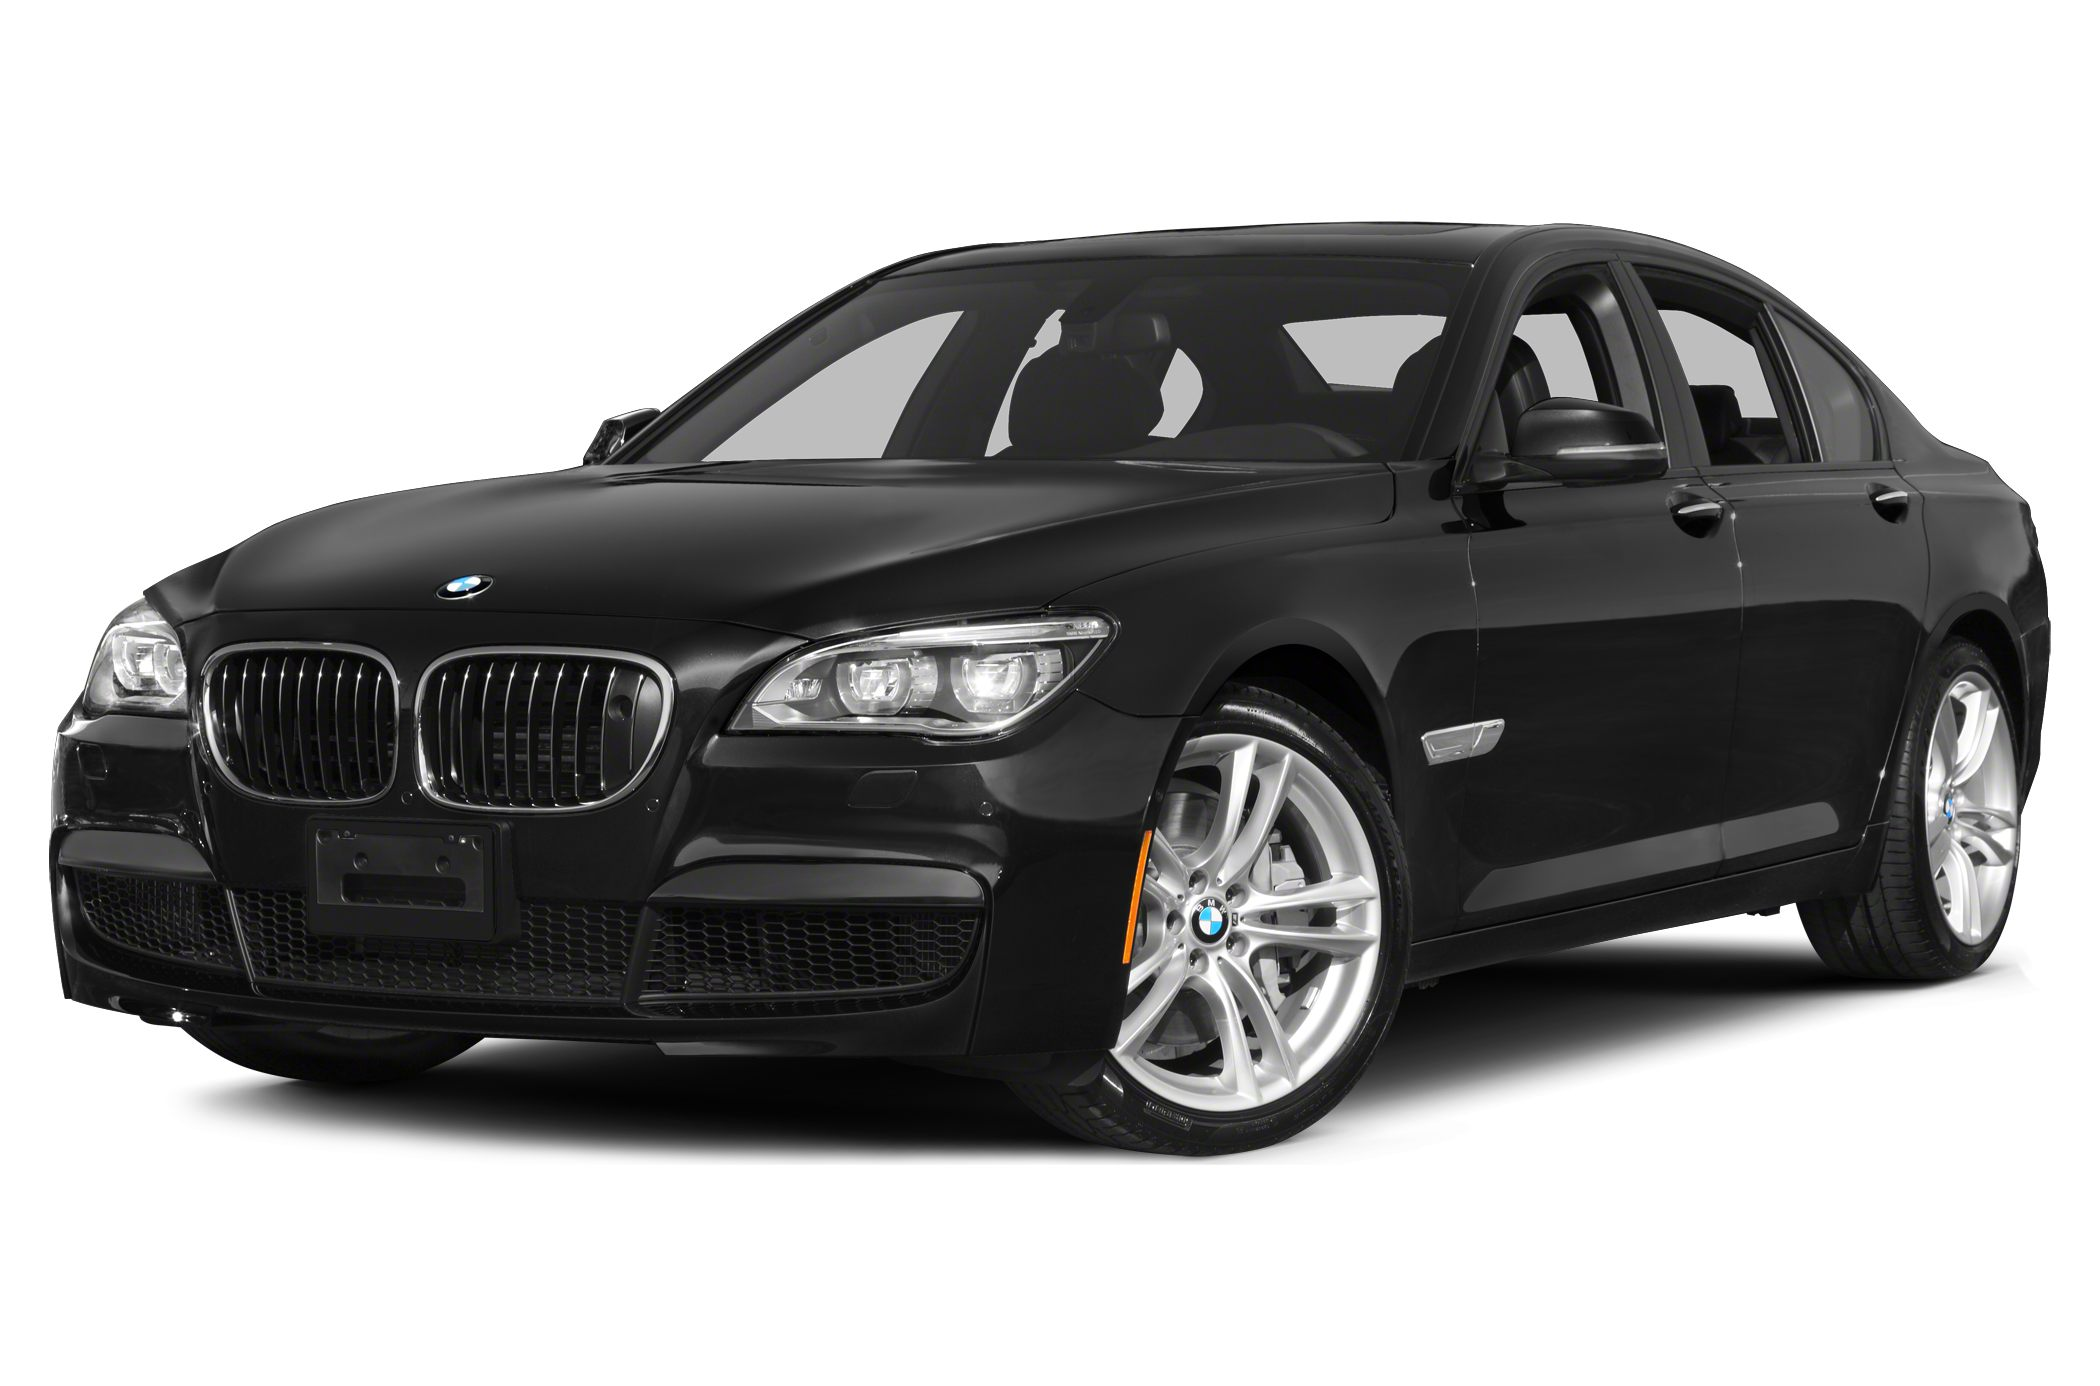 2013 BMW 750 Li Sedan for sale in Lake Worth for $49,999 with 47,733 miles